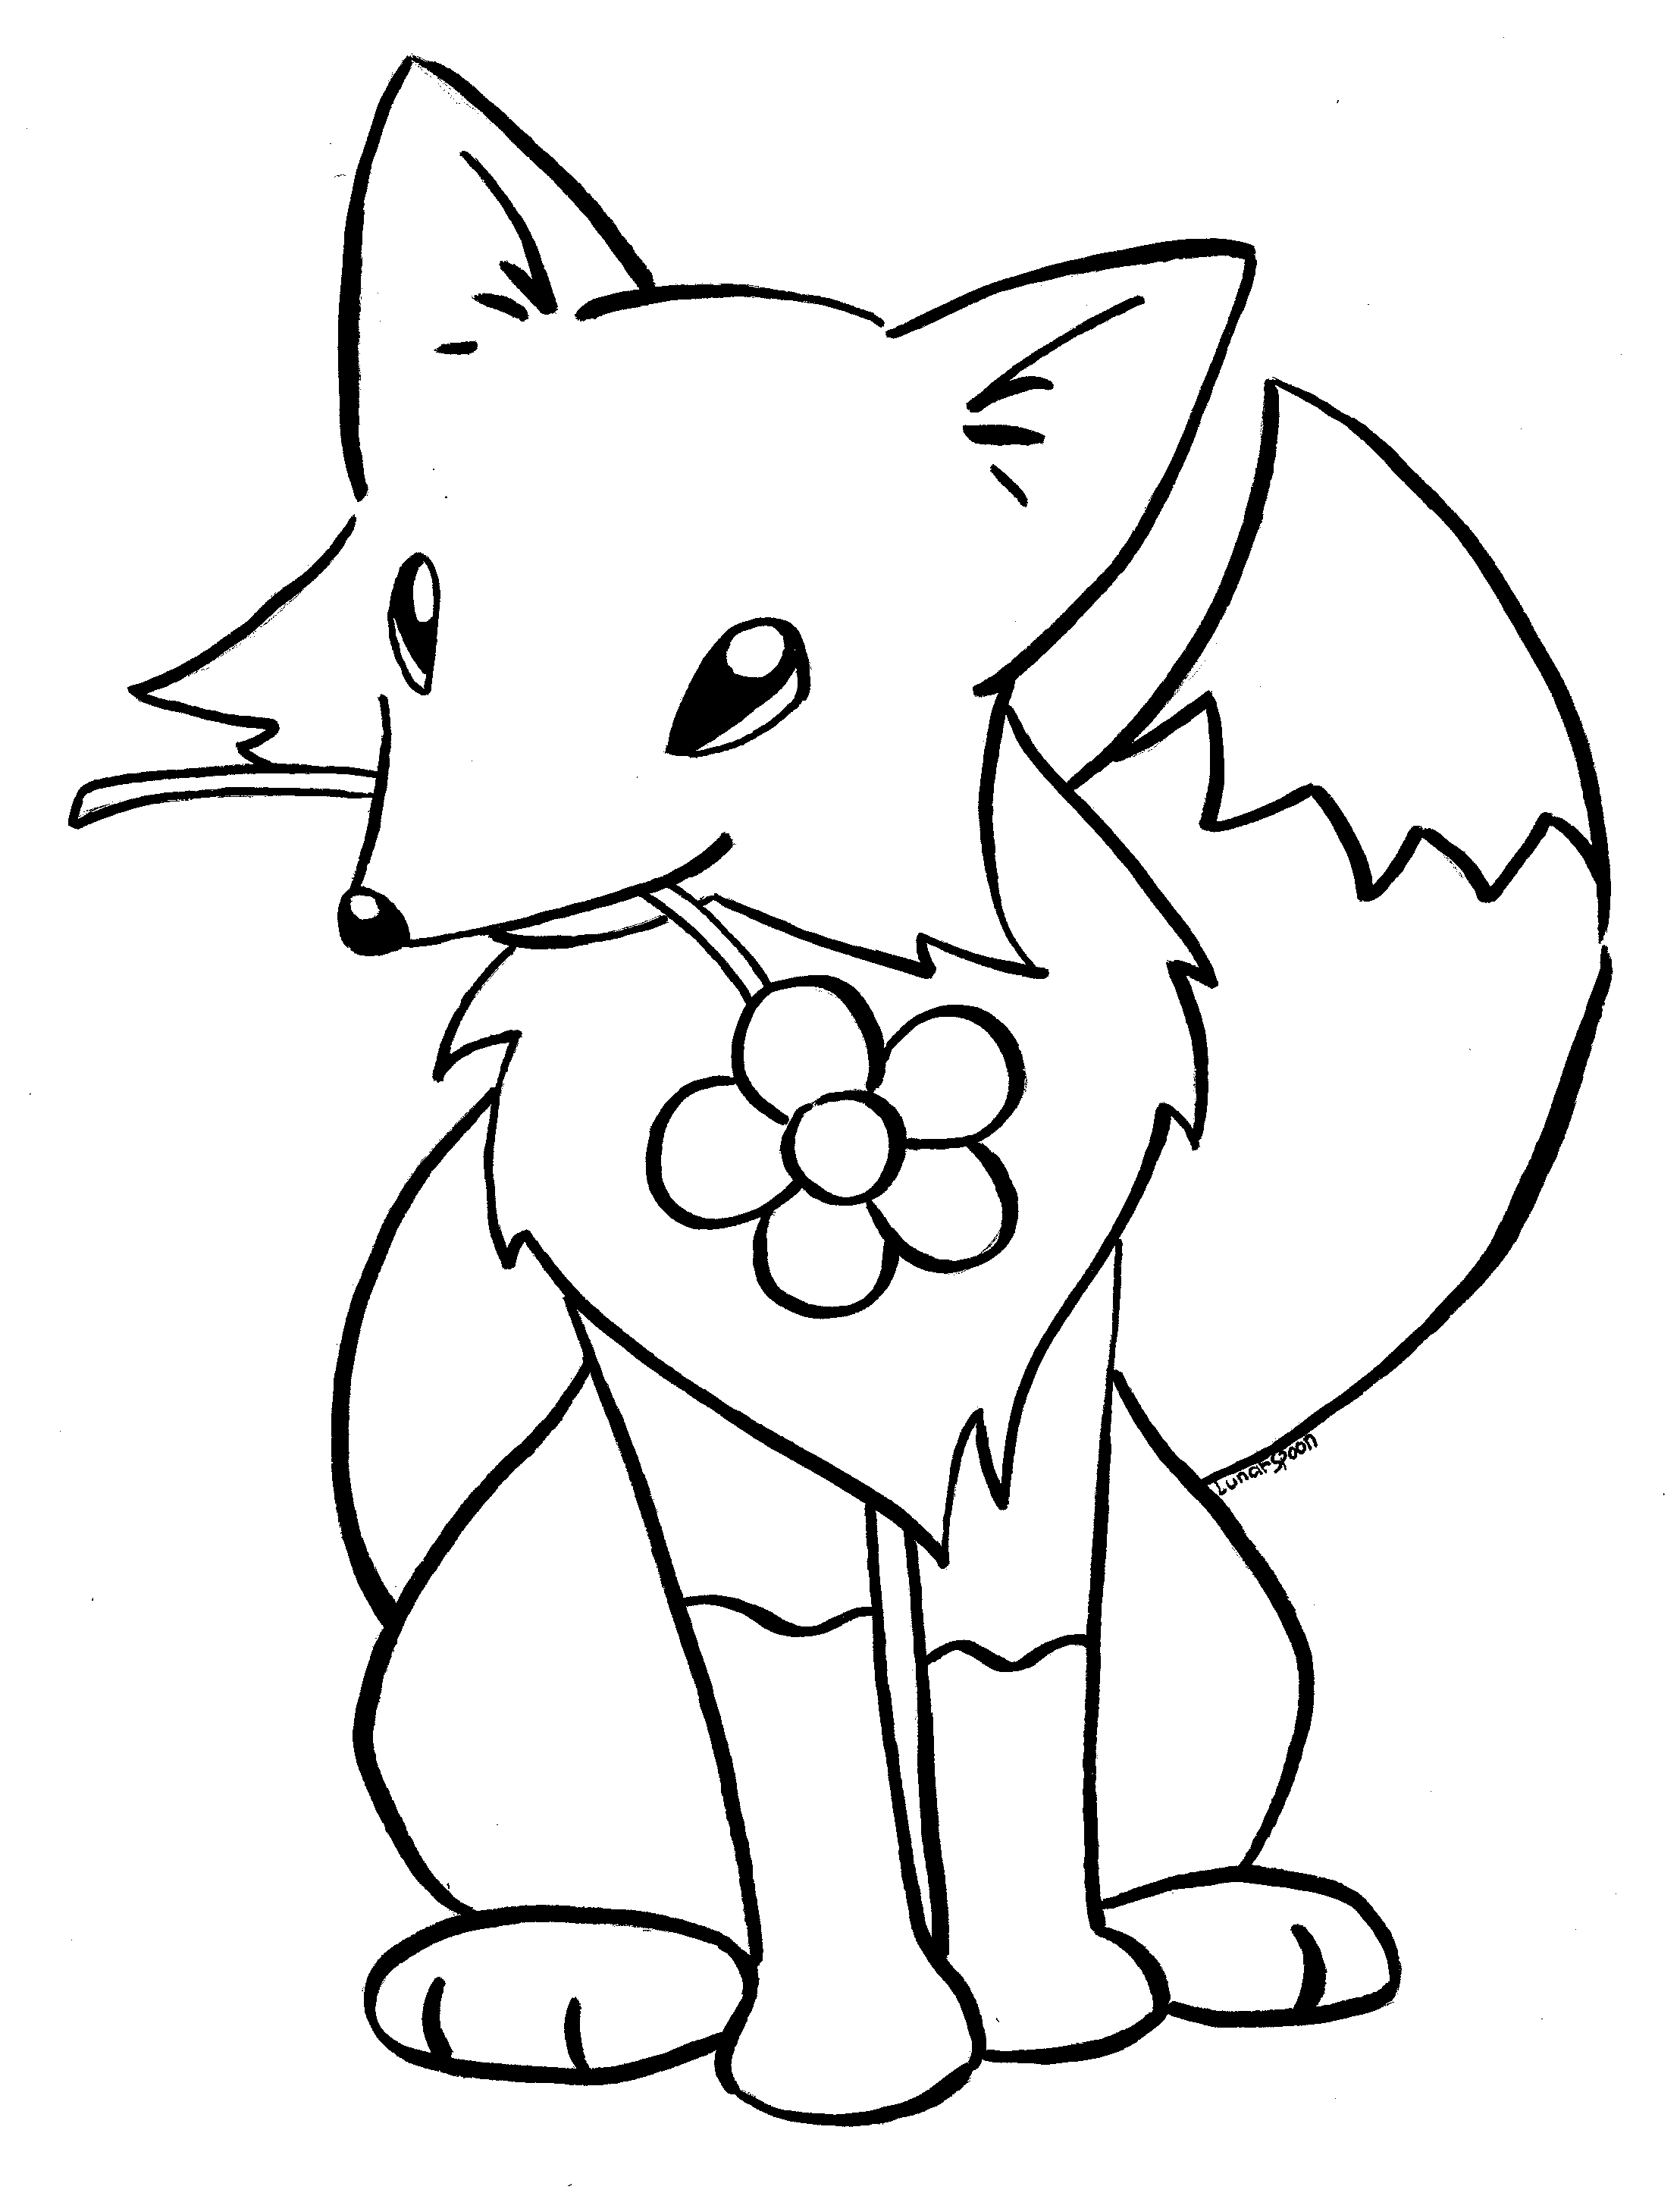 dapper animals coloring book 10 pics of dapper fox animal coloring pages preschool